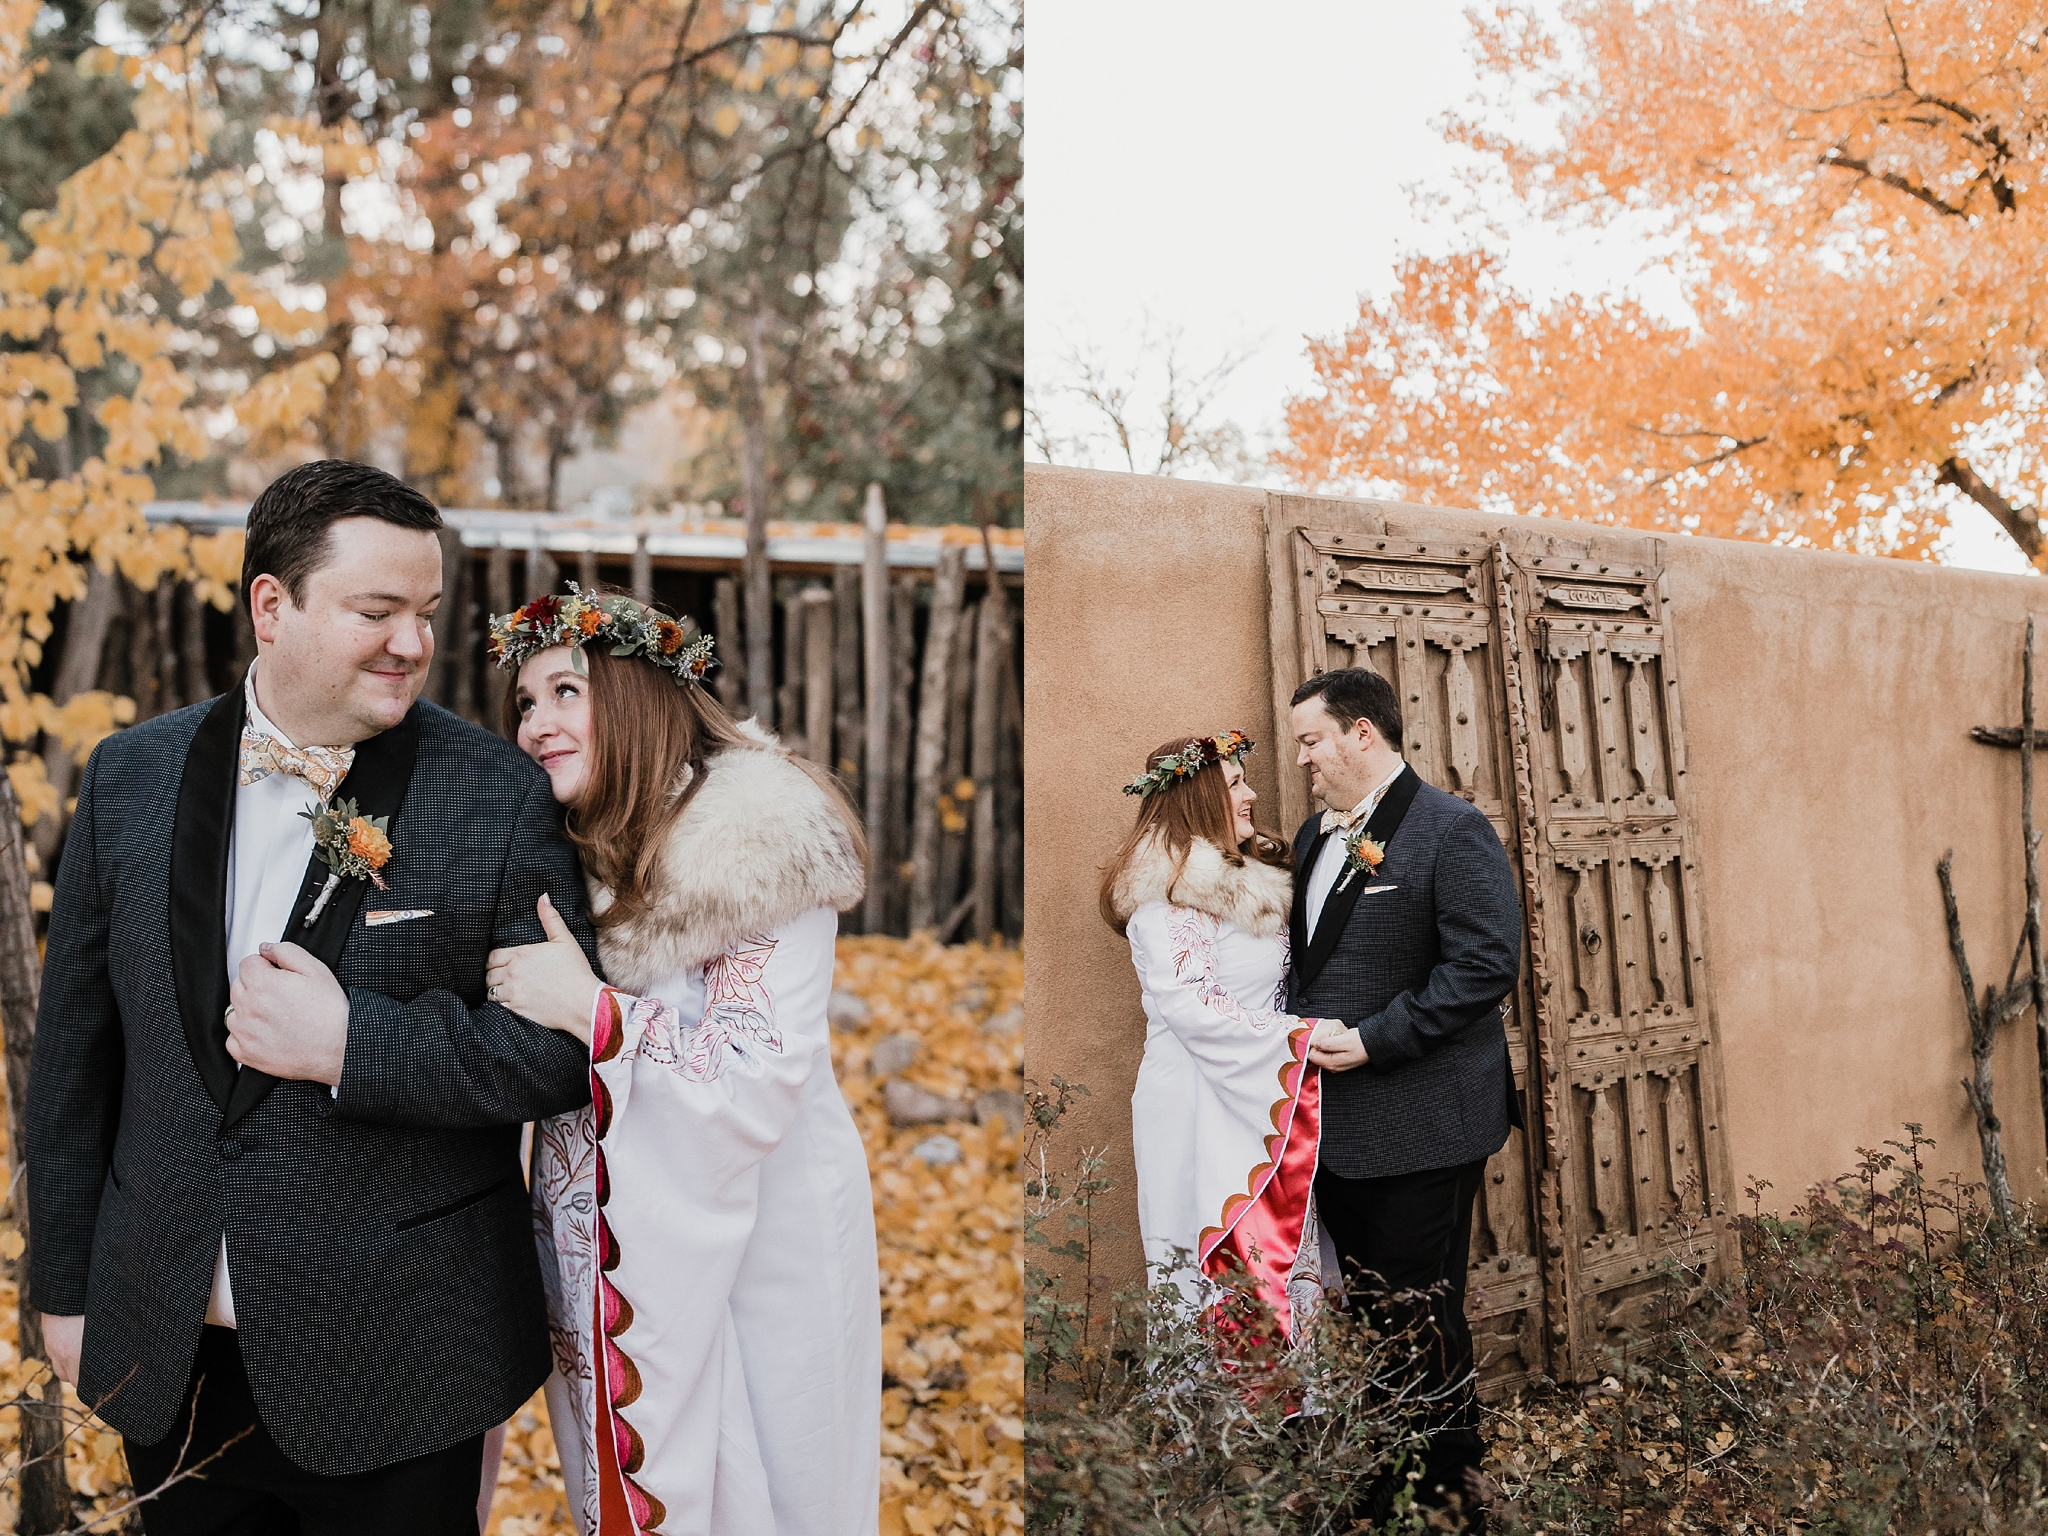 Alicia+lucia+photography+-+albuquerque+wedding+photographer+-+santa+fe+wedding+photography+-+new+mexico+wedding+photographer+-+albuquerque+wedding+-+santa+fe+wedding+-+wedding+gowns+-+non+traditional+wedding+gowns_0029.jpg